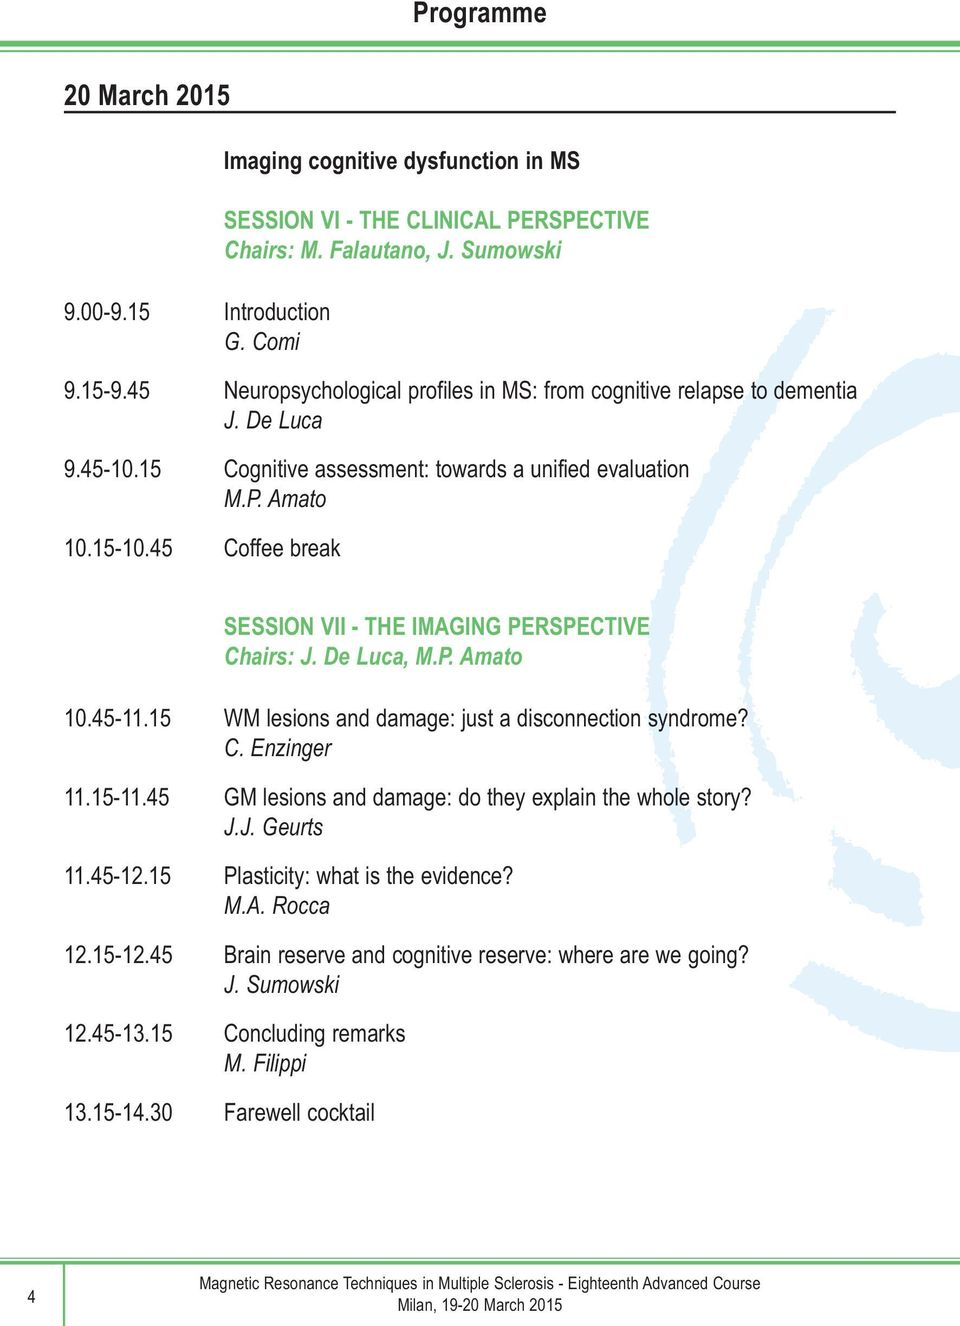 45 Coffee break SESSION VII - THE IMAGING PERSPECTIVE Chairs: J. De Luca, M.P. Amato 10.45-11.15 WM lesions and damage: just a disconnection syndrome? C. Enzinger 11.15-11.